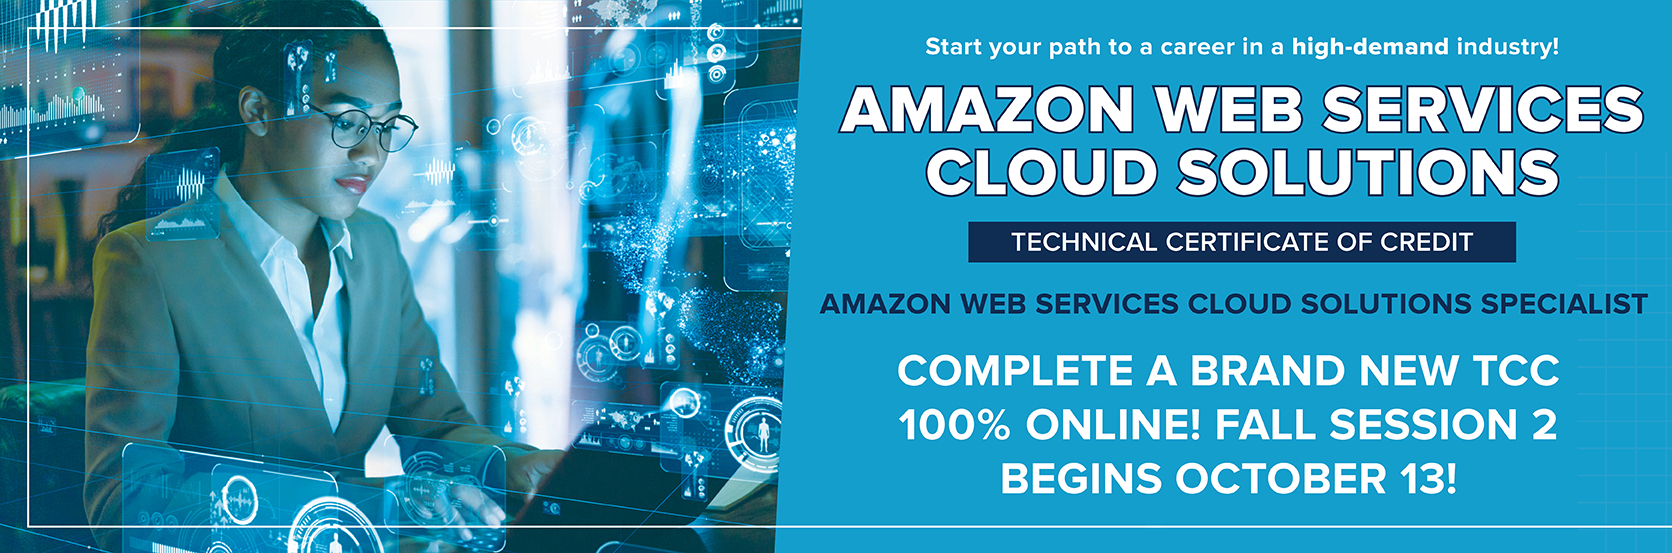 Start your path to a career in a high-demand industry with the new, online Amazon Web Services Cloud Solutions TCC! Apply online today at www.centralgatech.edu/admissions-financial-aid.